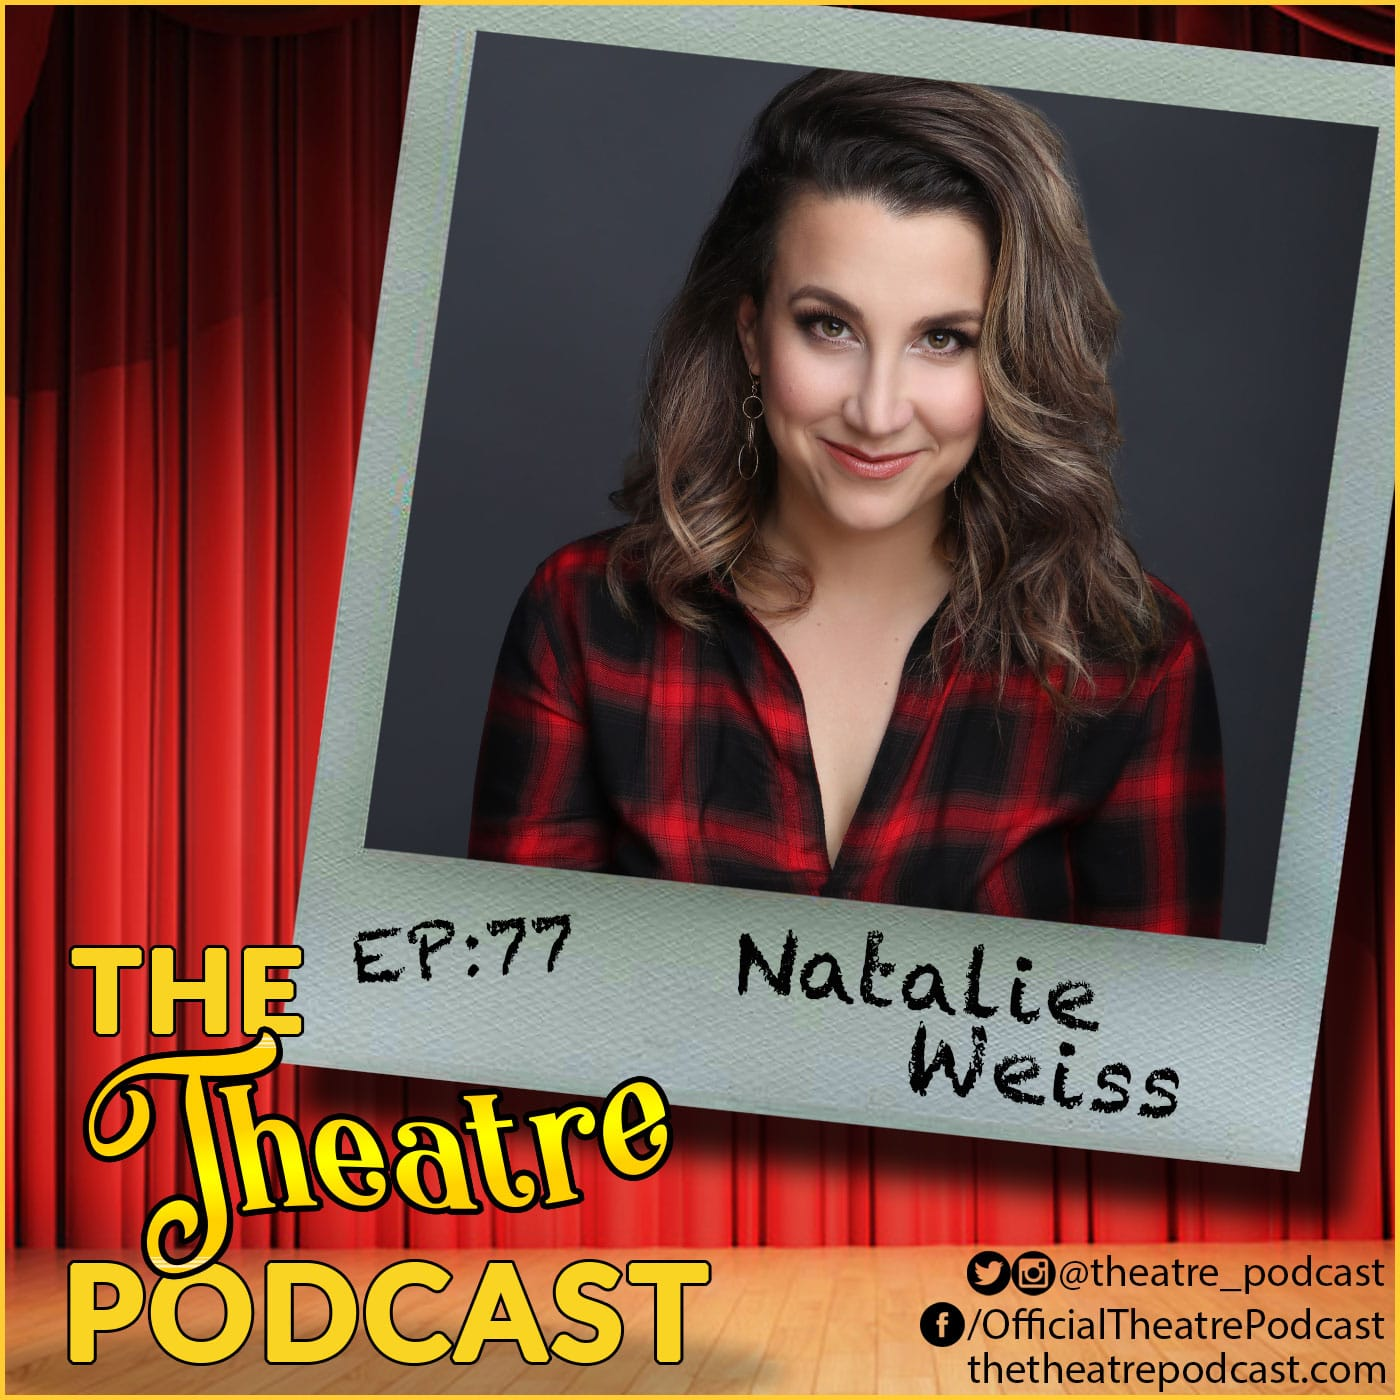 The Theatre Podcast with Alan Seales Episode 77 Natalie Weiss